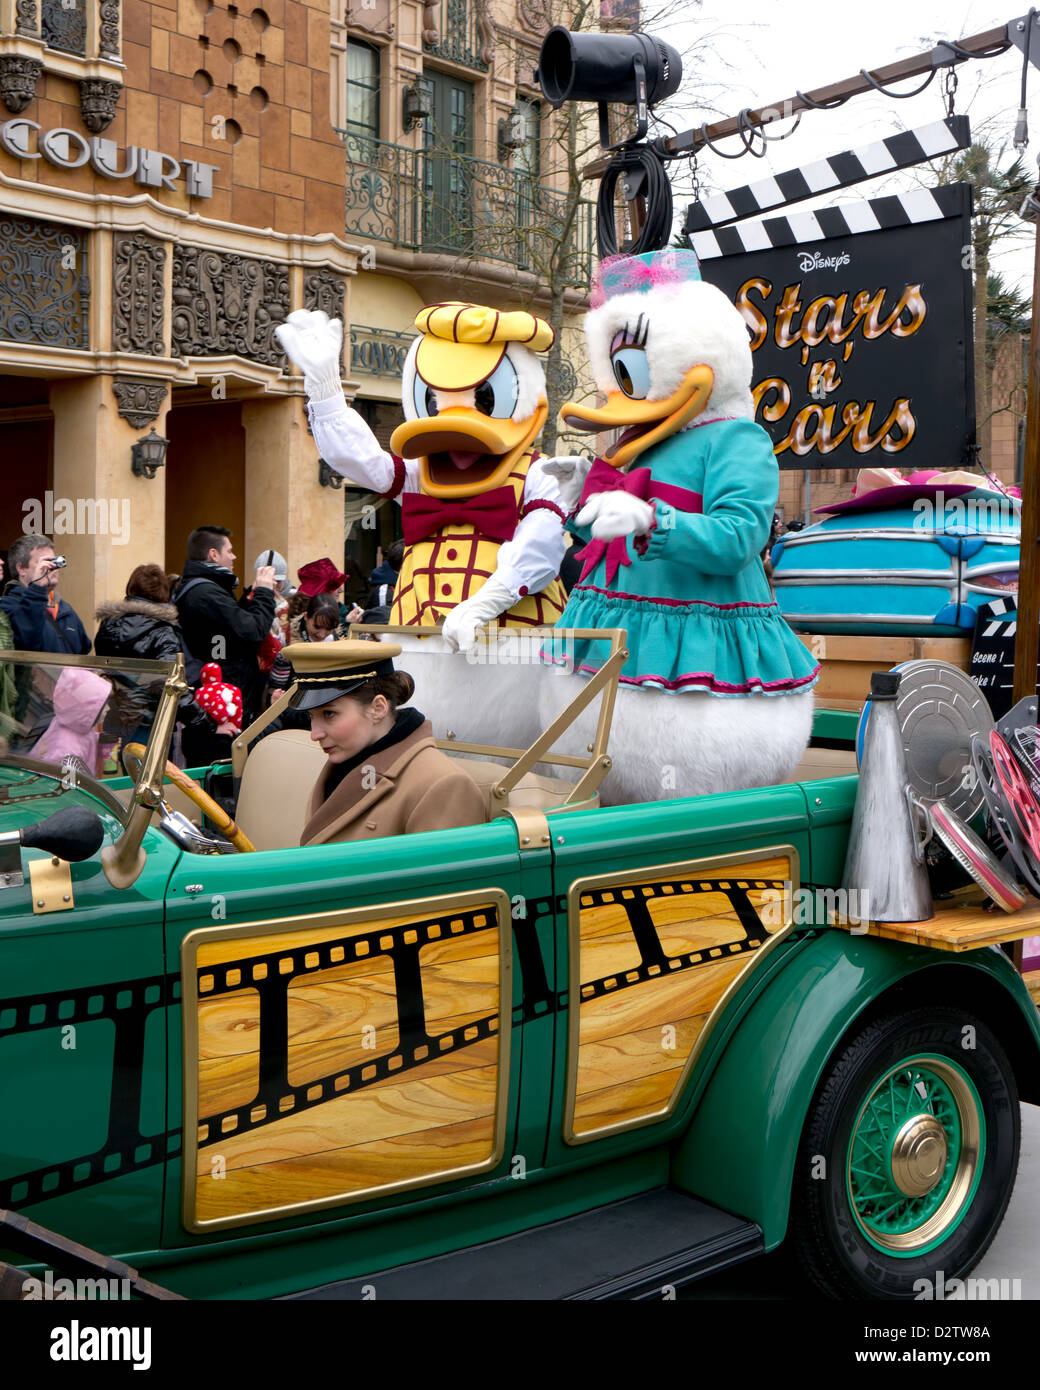 Donald Duck and Daisy Duck taking part in Disneys Stars n Cars